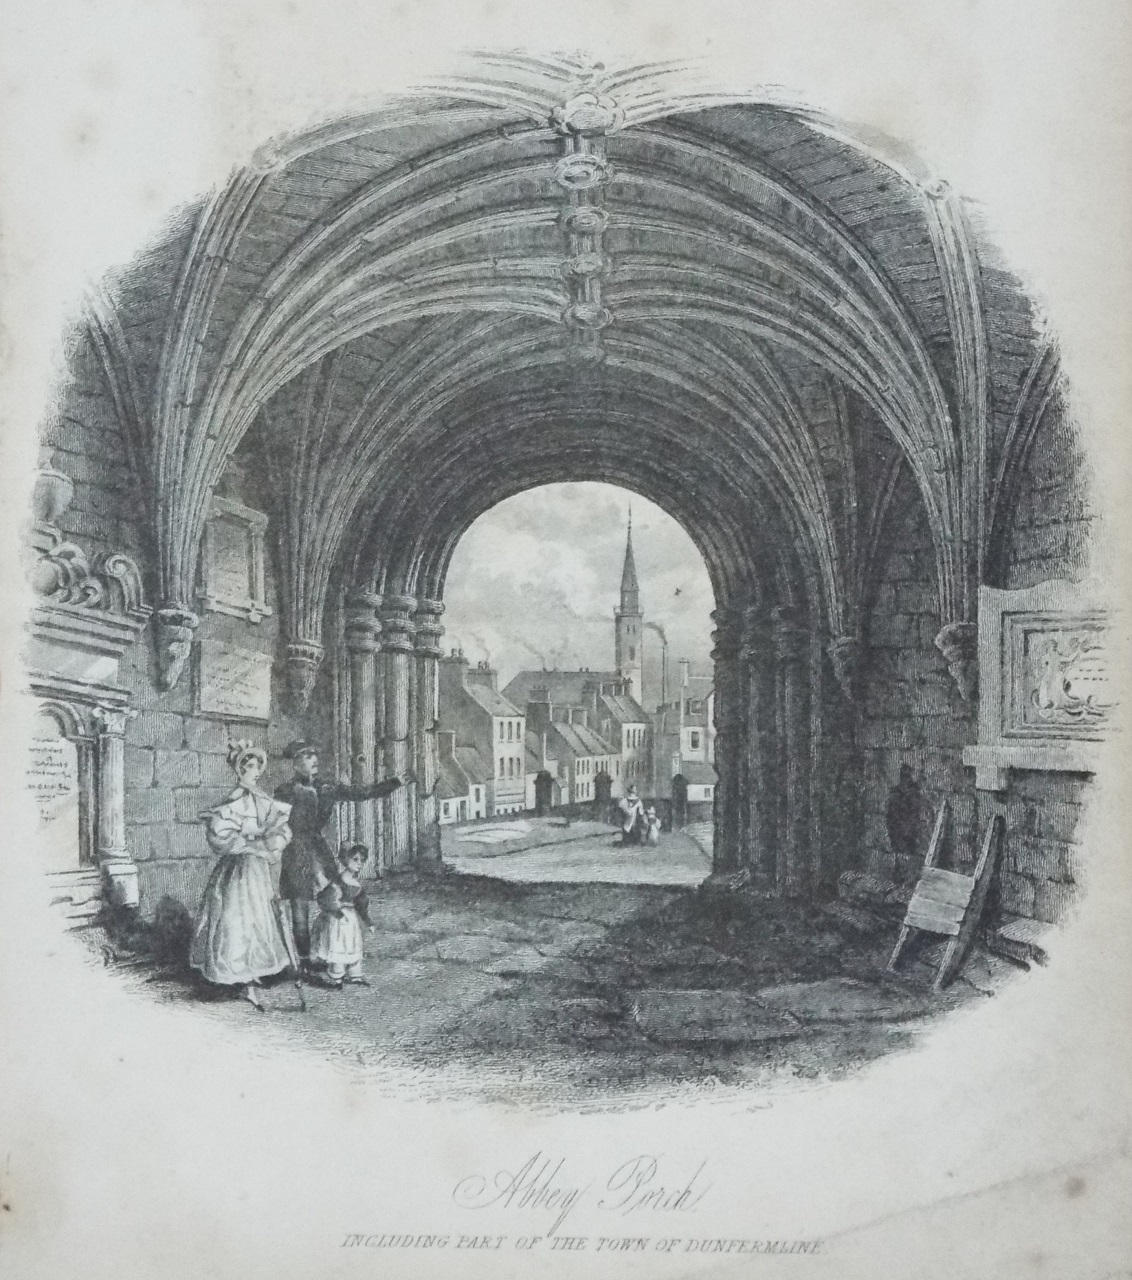 Print - Abbey Porch, including part of the Town of Dunfermline.